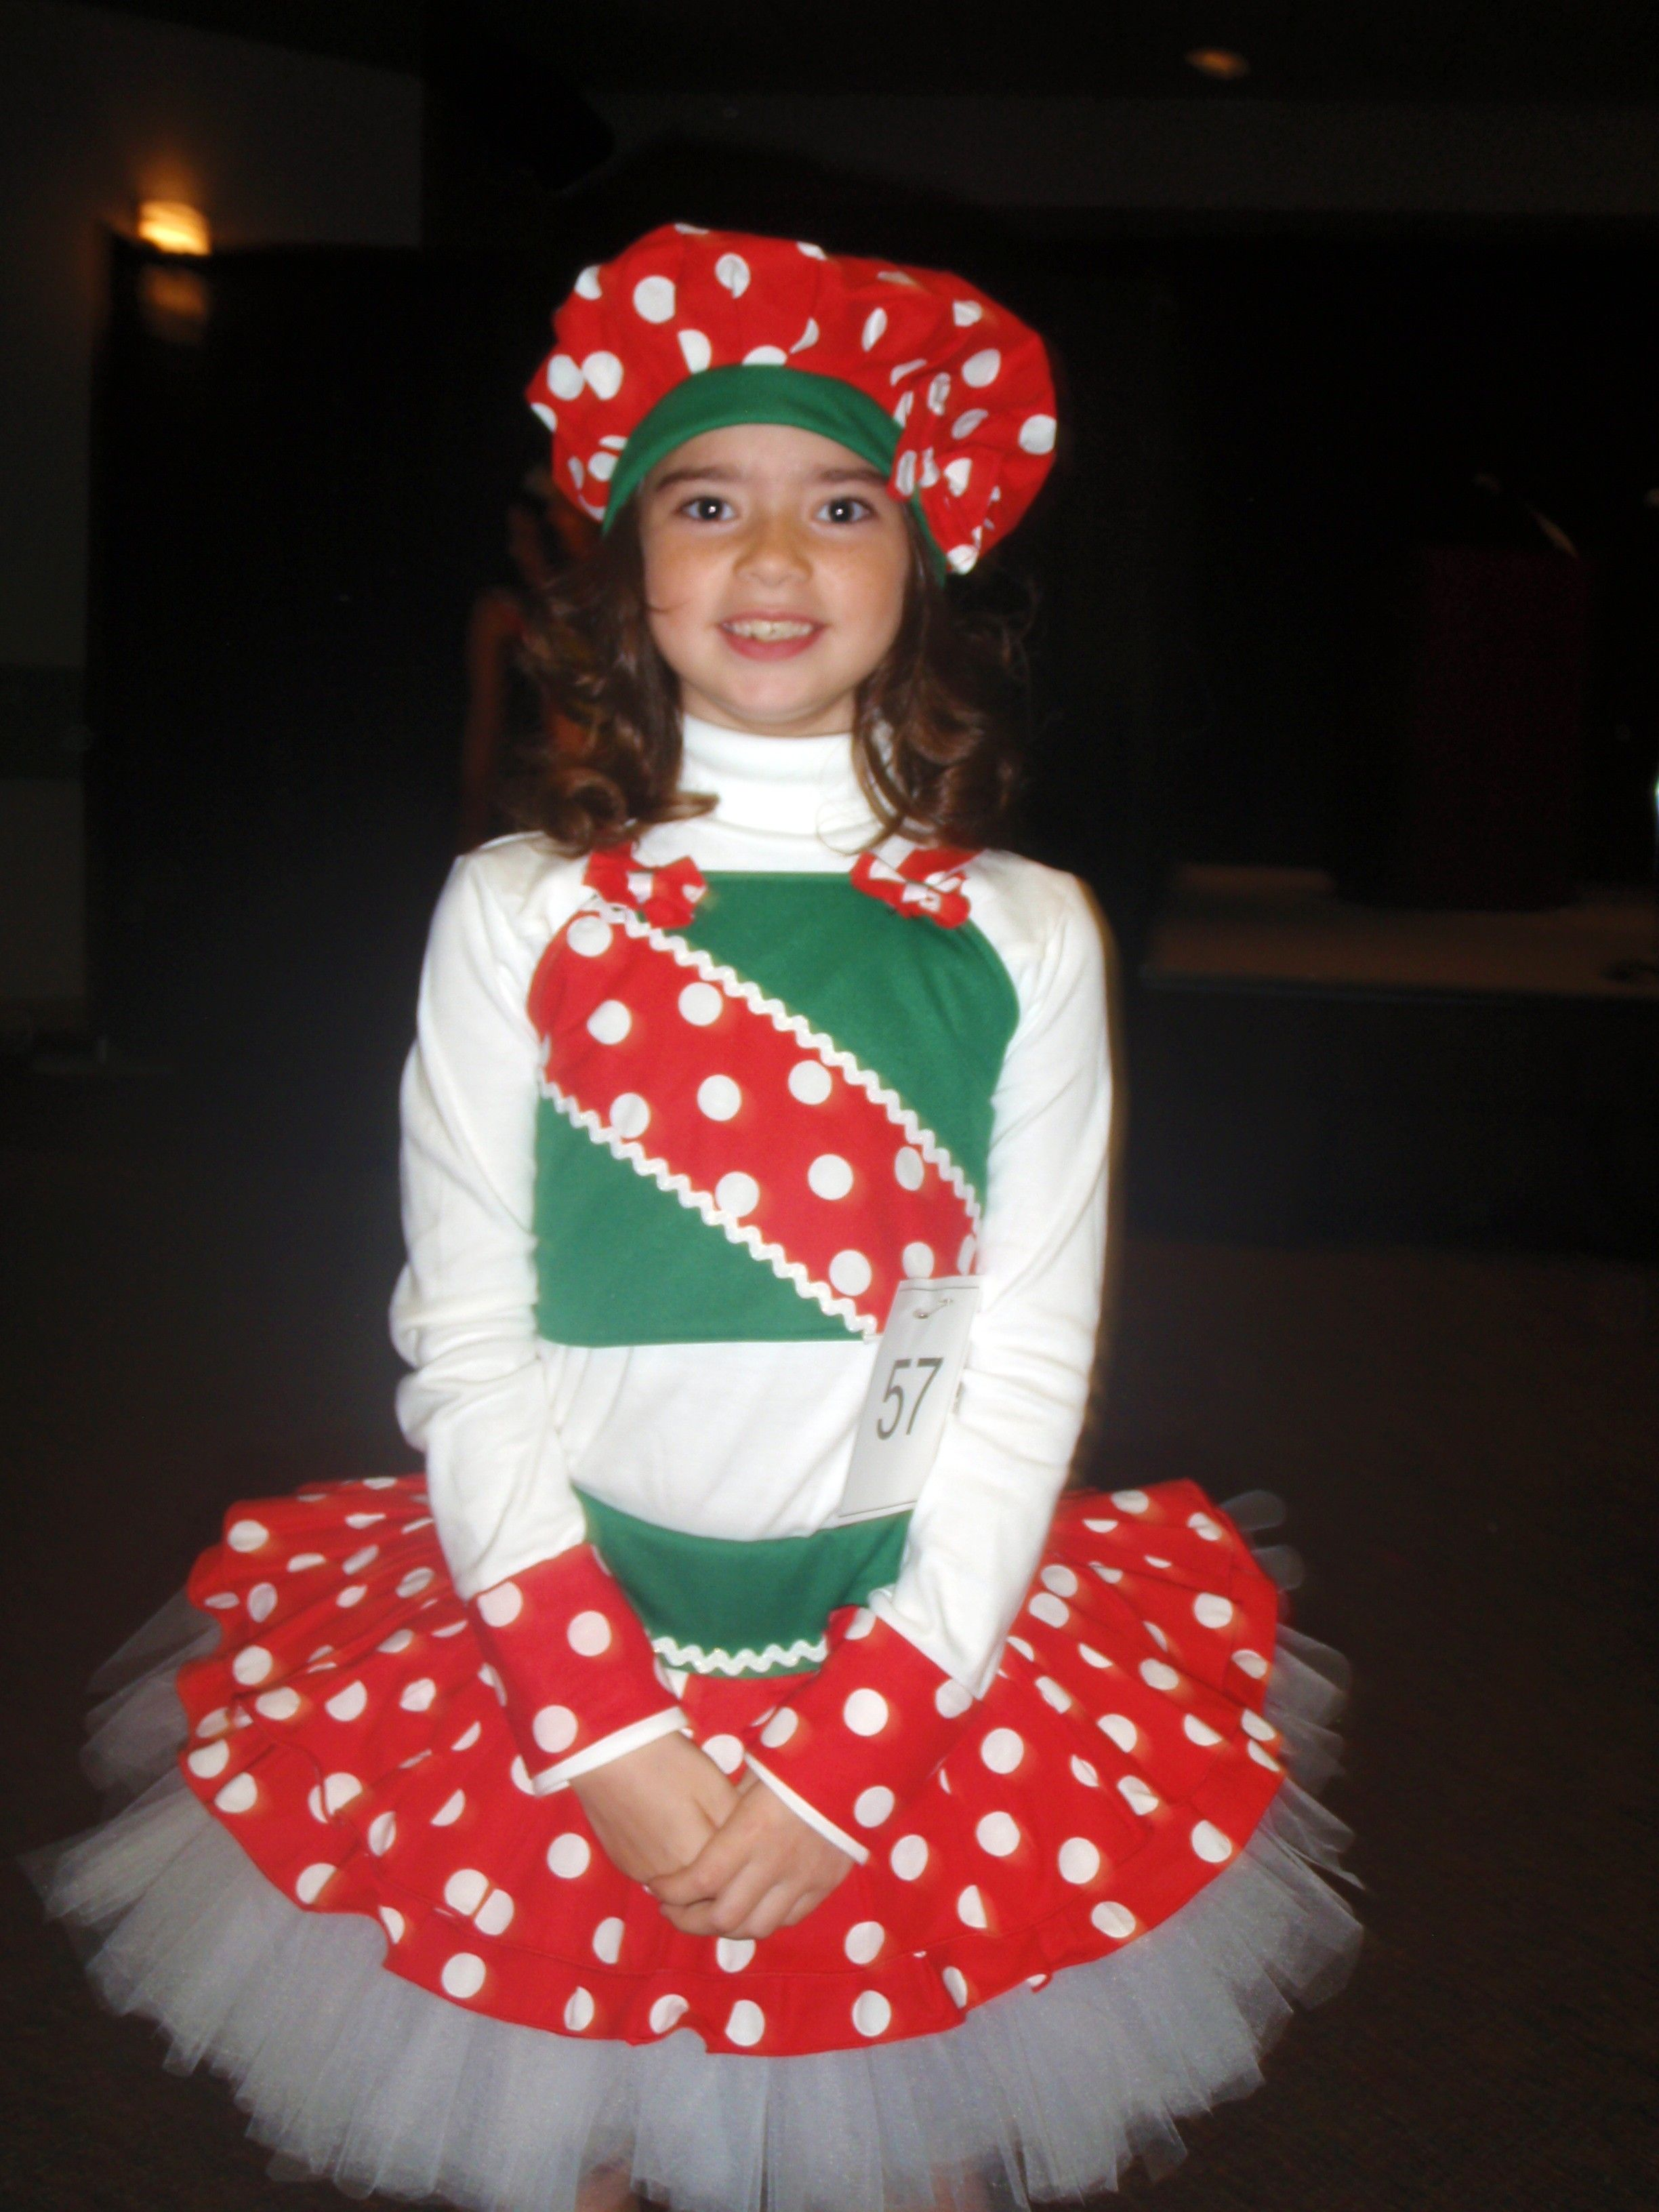 Christmas Beauty Pageant Outfits.Christmas Pageant Outfit Pinterested In Me Christmas